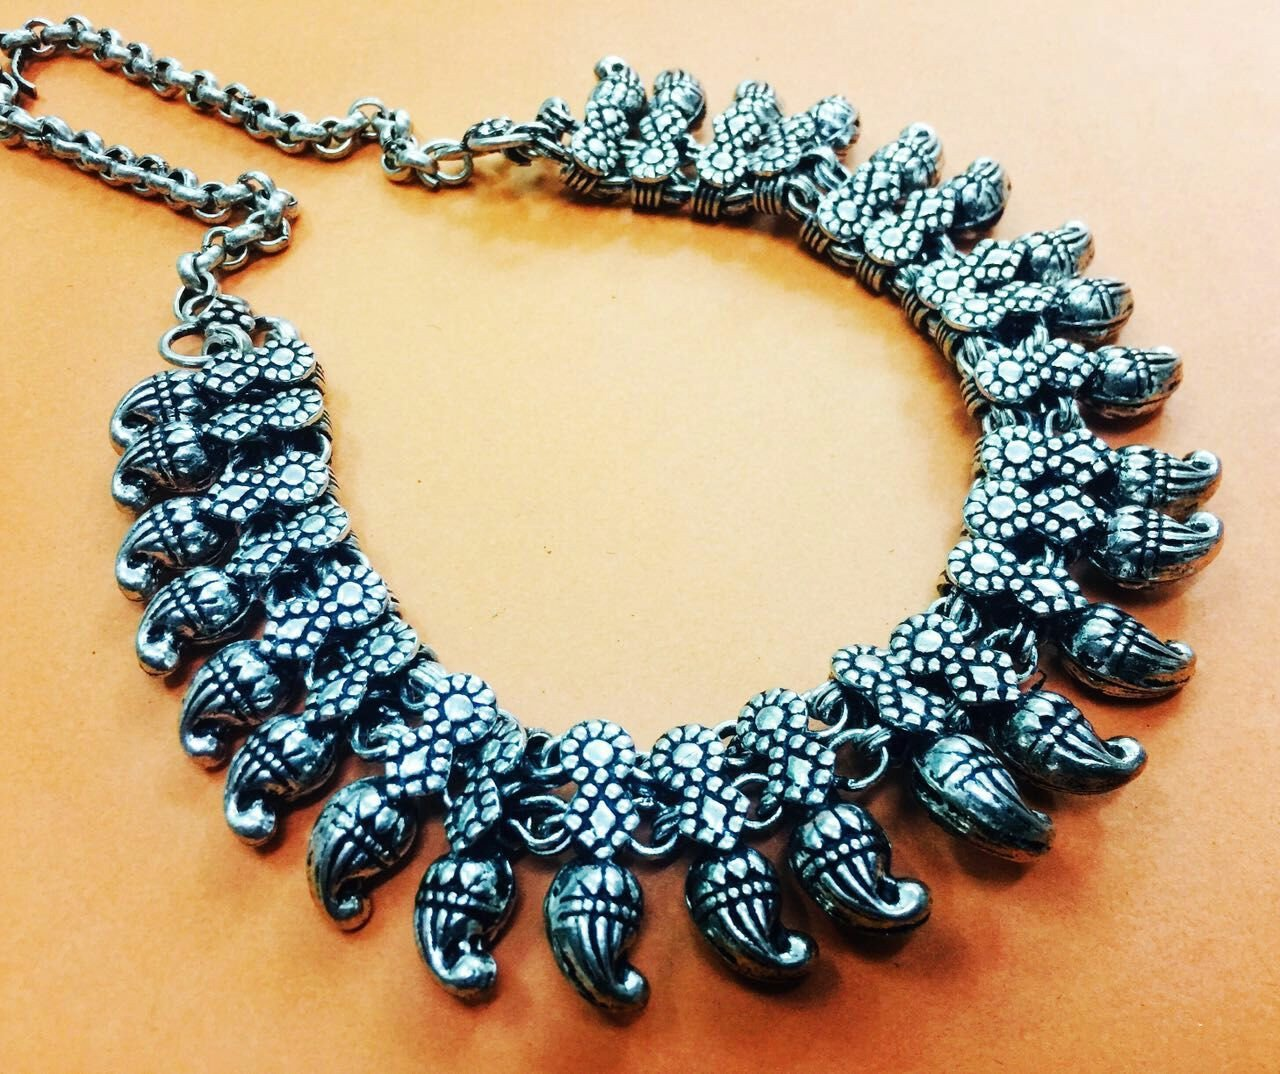 Oxidized German Silver Kolhapur Necklace